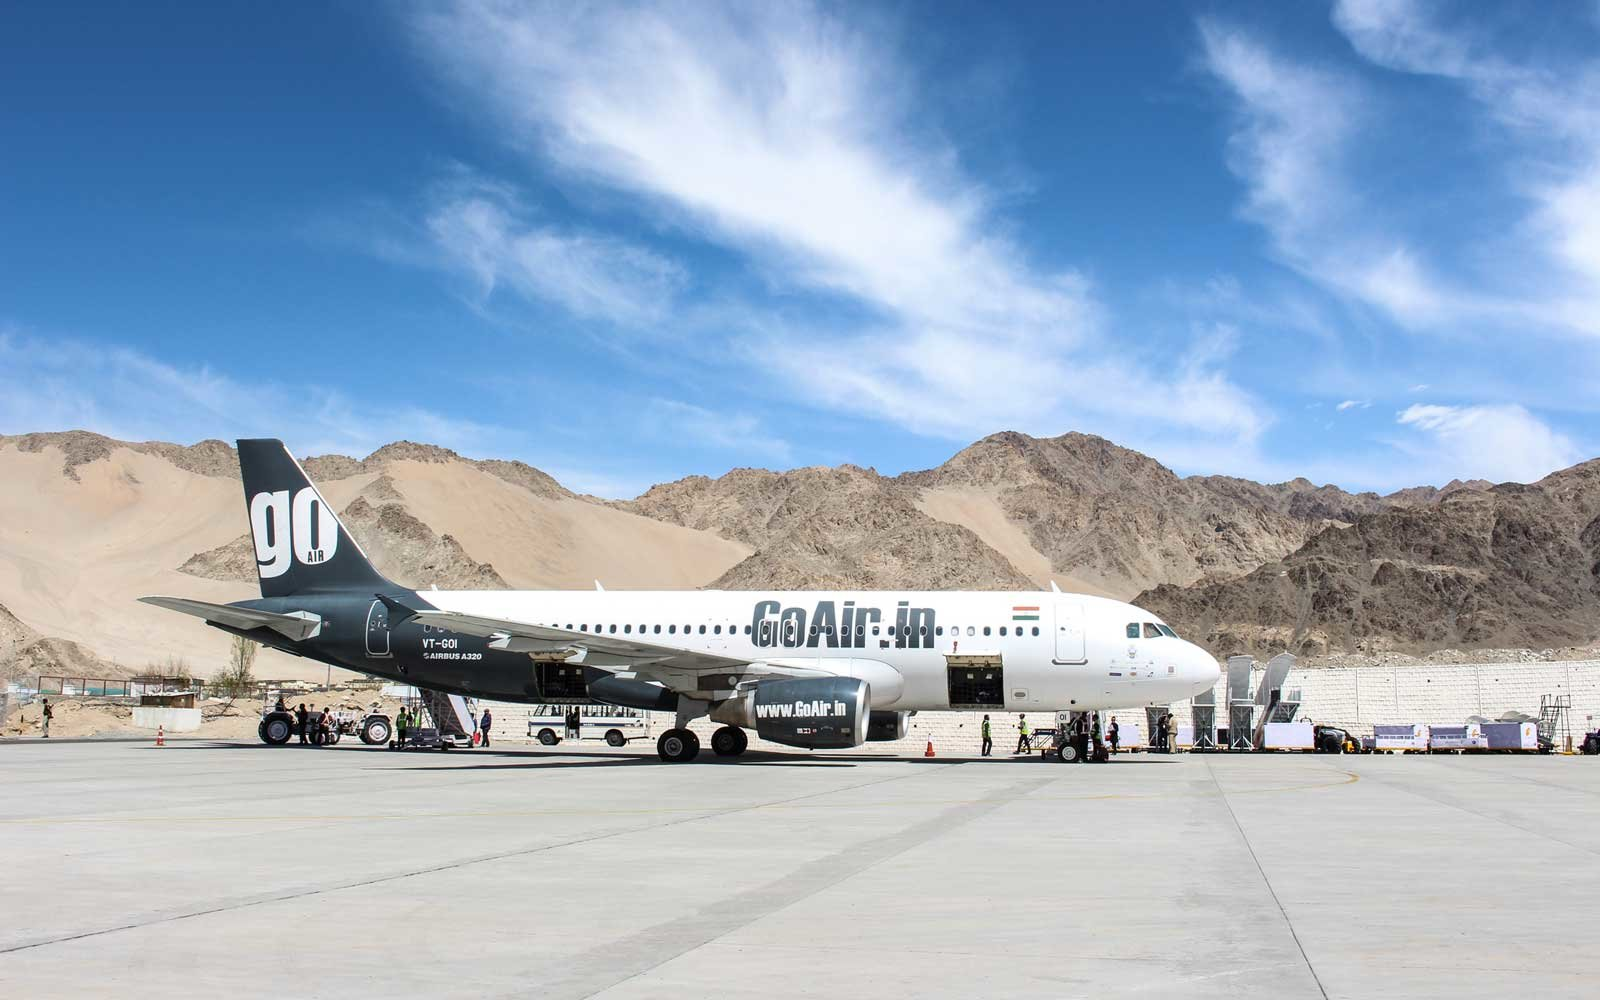 Indian domestic airline GoAir is ready to go from Leh Ladakh airport.